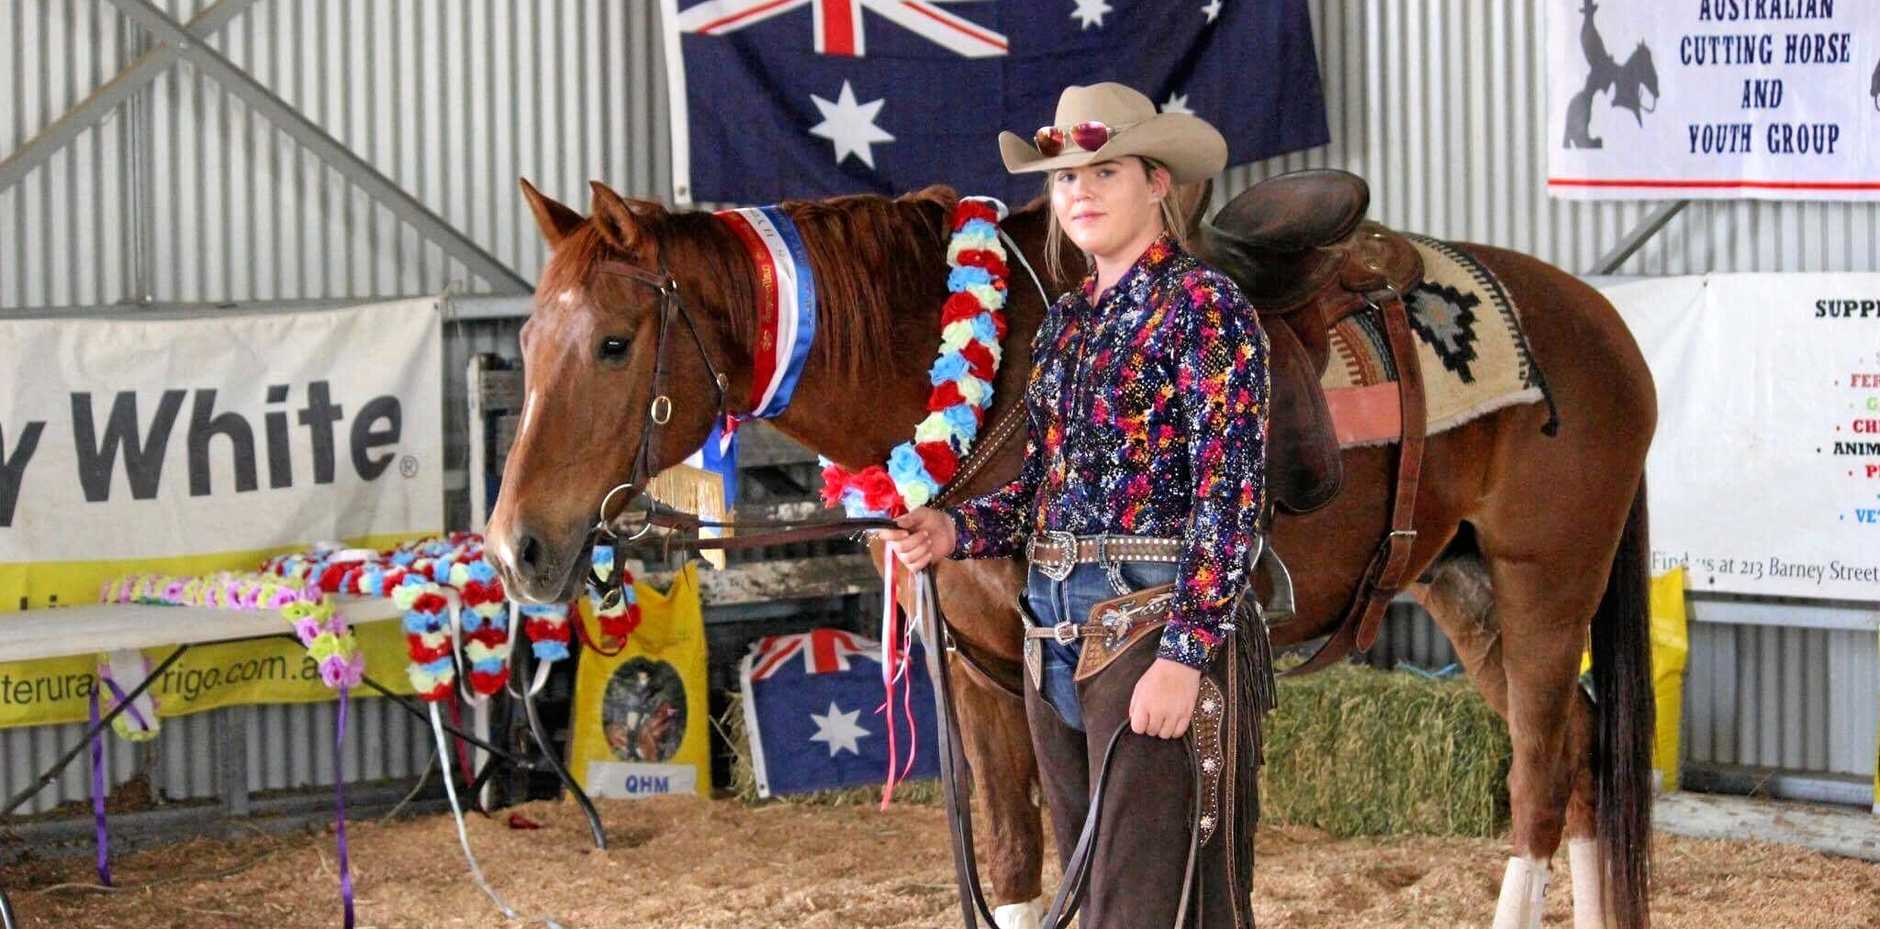 CUT OUT FOR THIS SPORT: Faith Lutheran College student Callie Malmborg took out Youth Champion for the 8-14 age group at the Australian Cutting Horse and Youth Group competition  on her horse Fly.